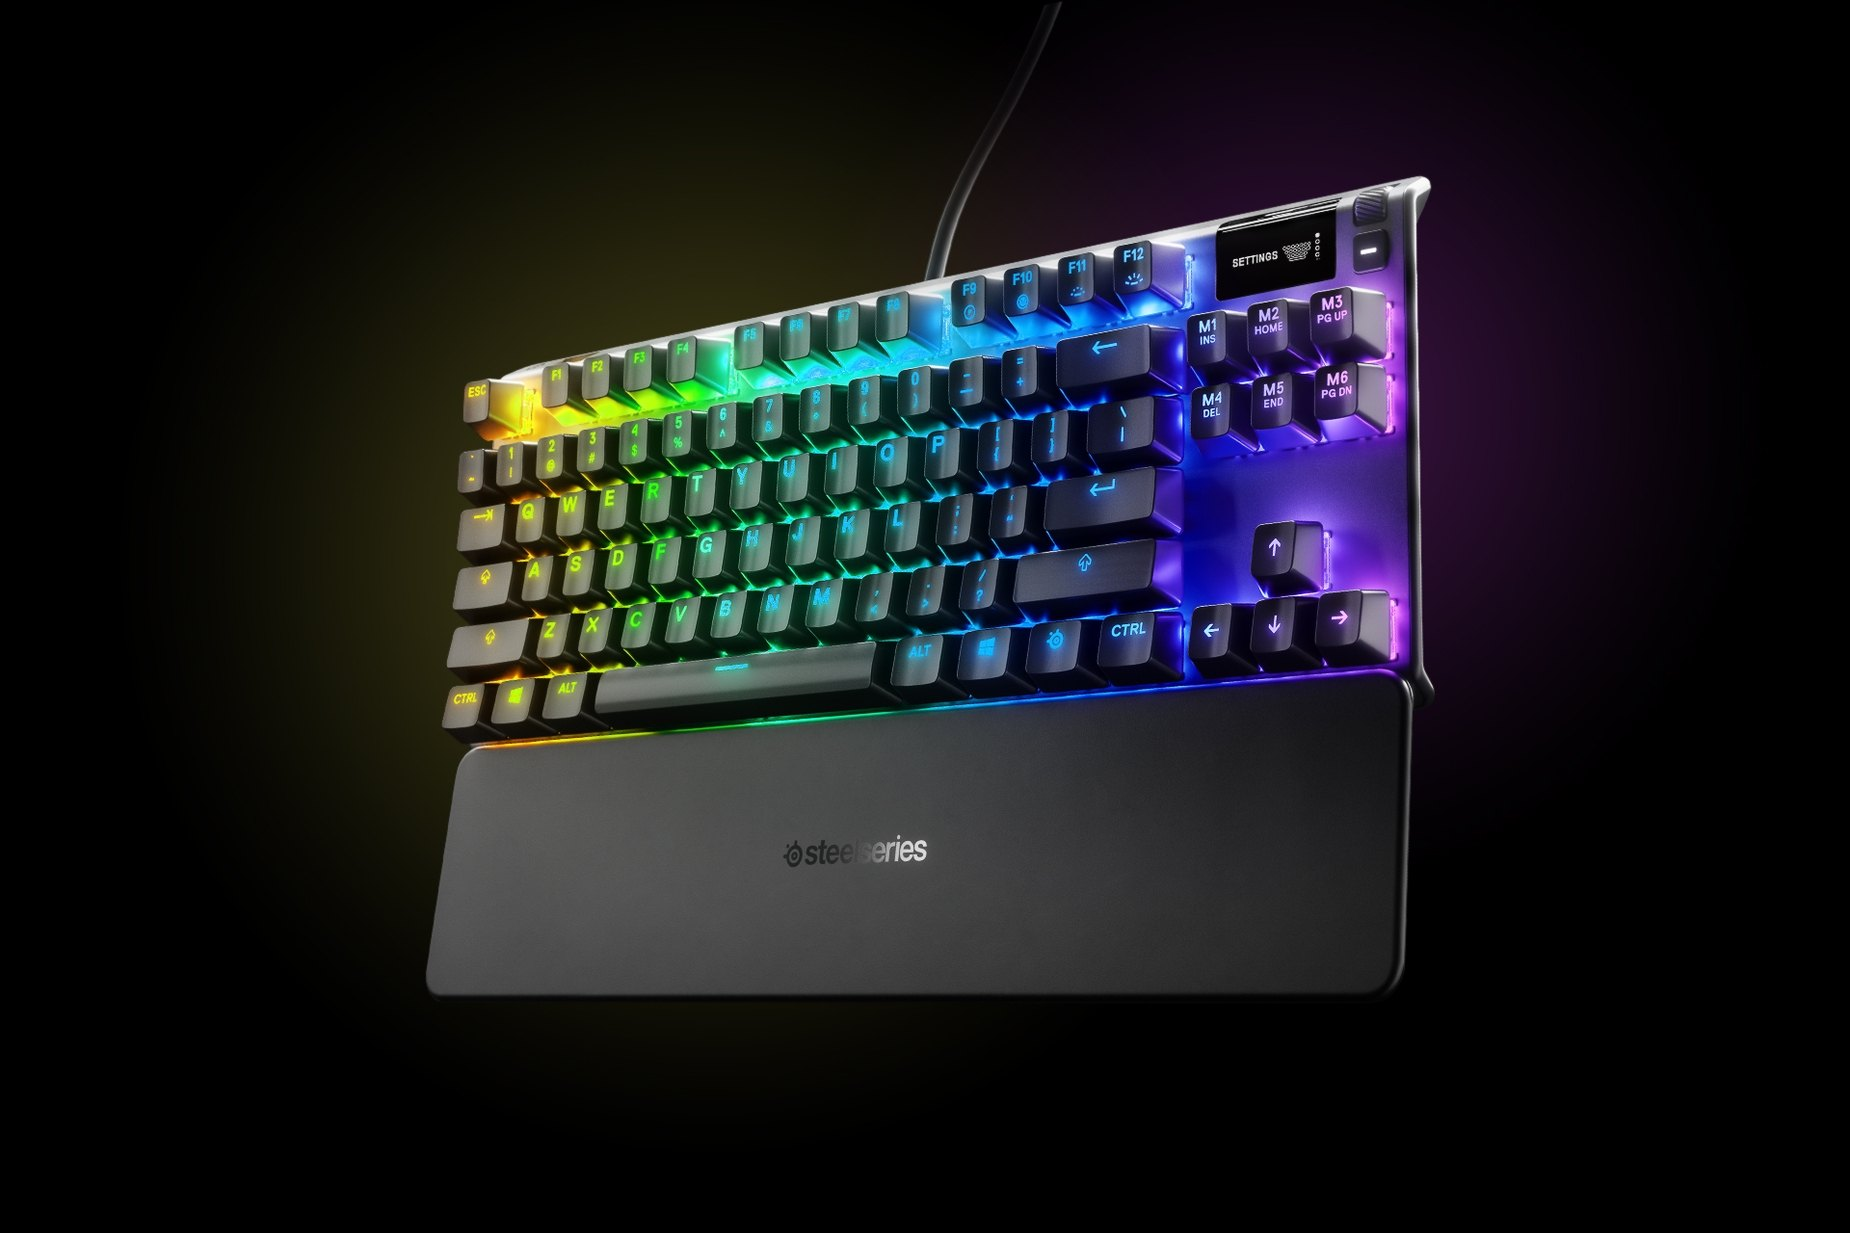 英国英语-Apex 7 TKL (Red Switch) gaming keyboard with the illumination lit up on dark background, also shows the OLED screen and controls used to change settings and adjust audio